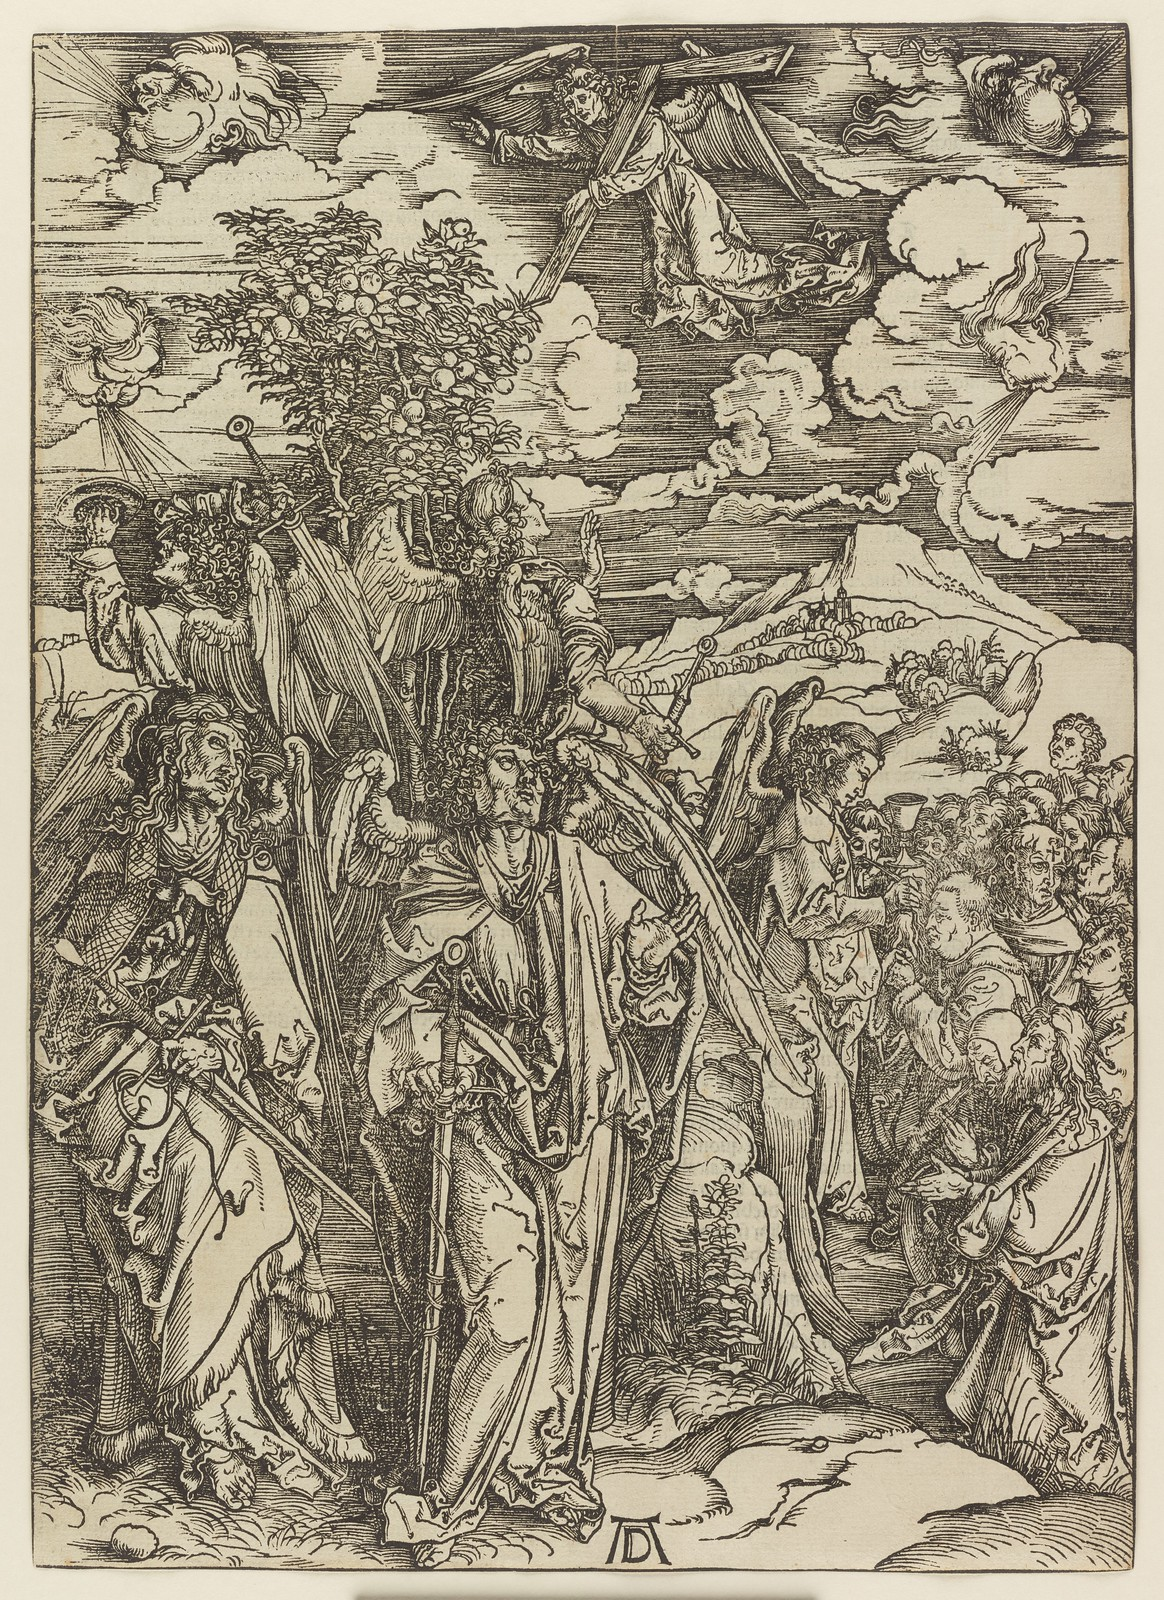 Albrecht Dürer - Four angels holding the winds, Plate six of fifteen from the Latin edition of The Apocalypse series, printed 1511